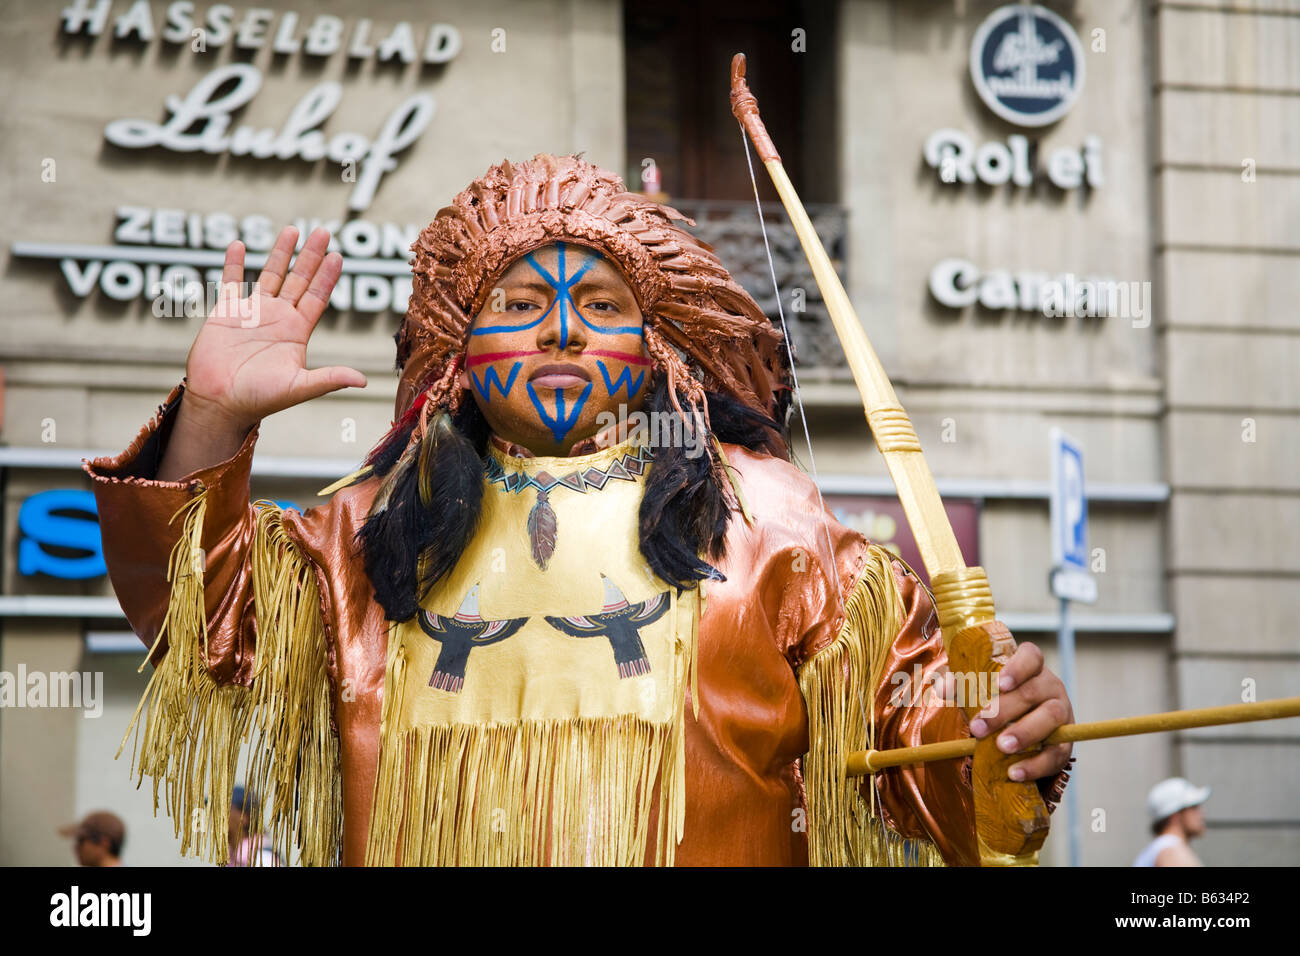 Street entertainer dressed as an American Indian, La Rambla, Barcelona, Spain - Stock Image